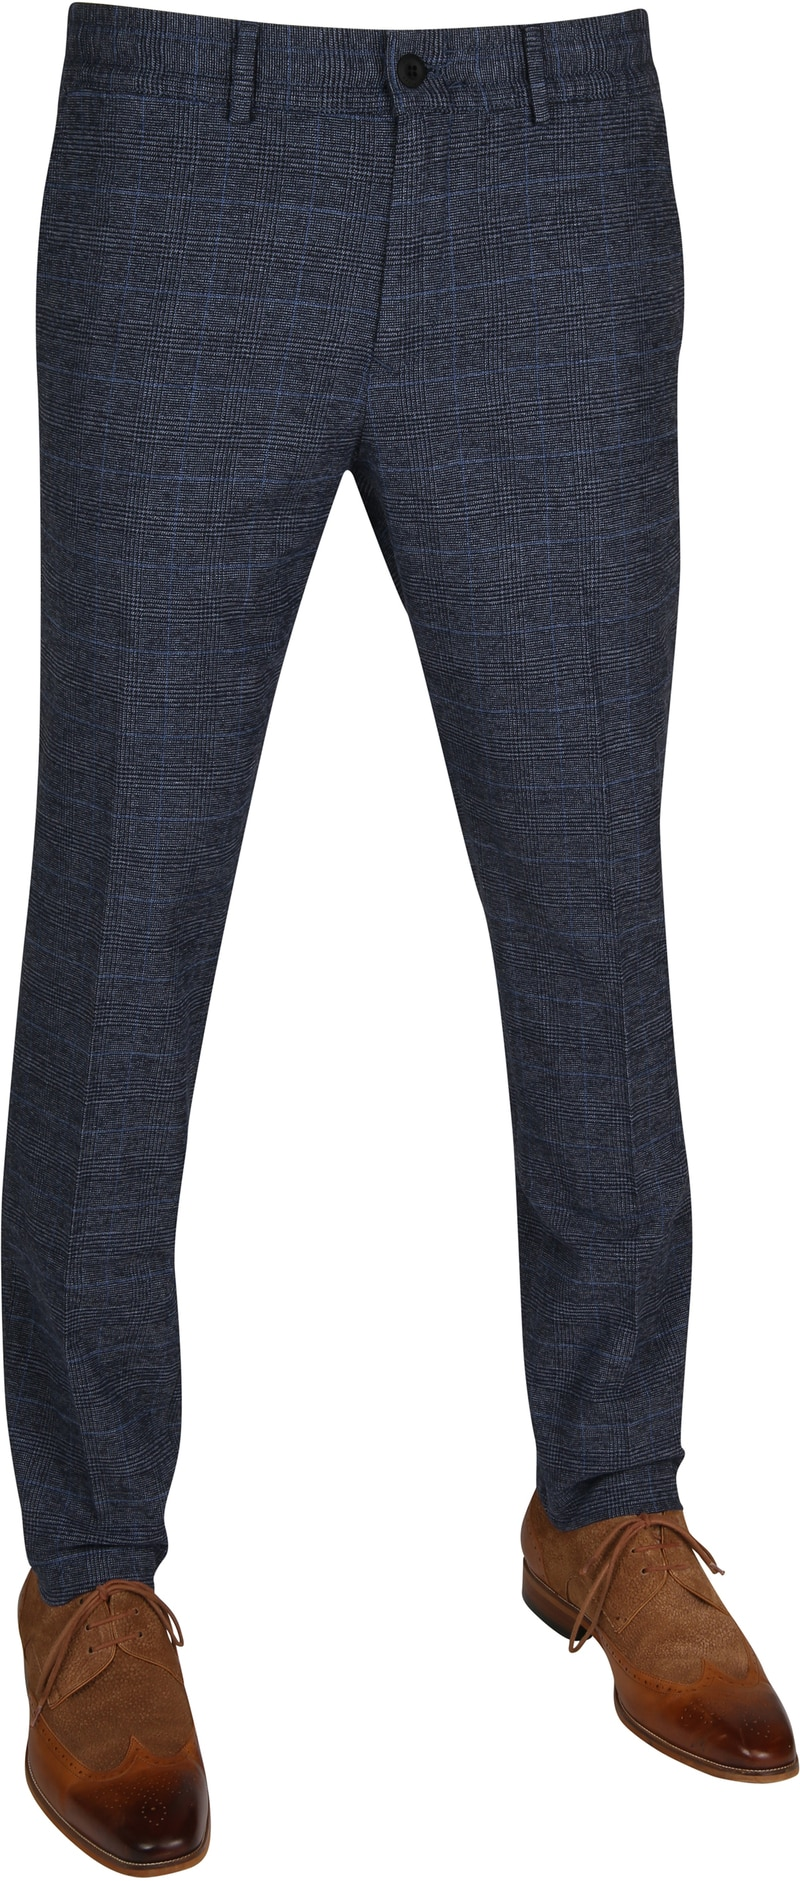 Tommy Hilfiger Active Pants Ruit Navy foto 0